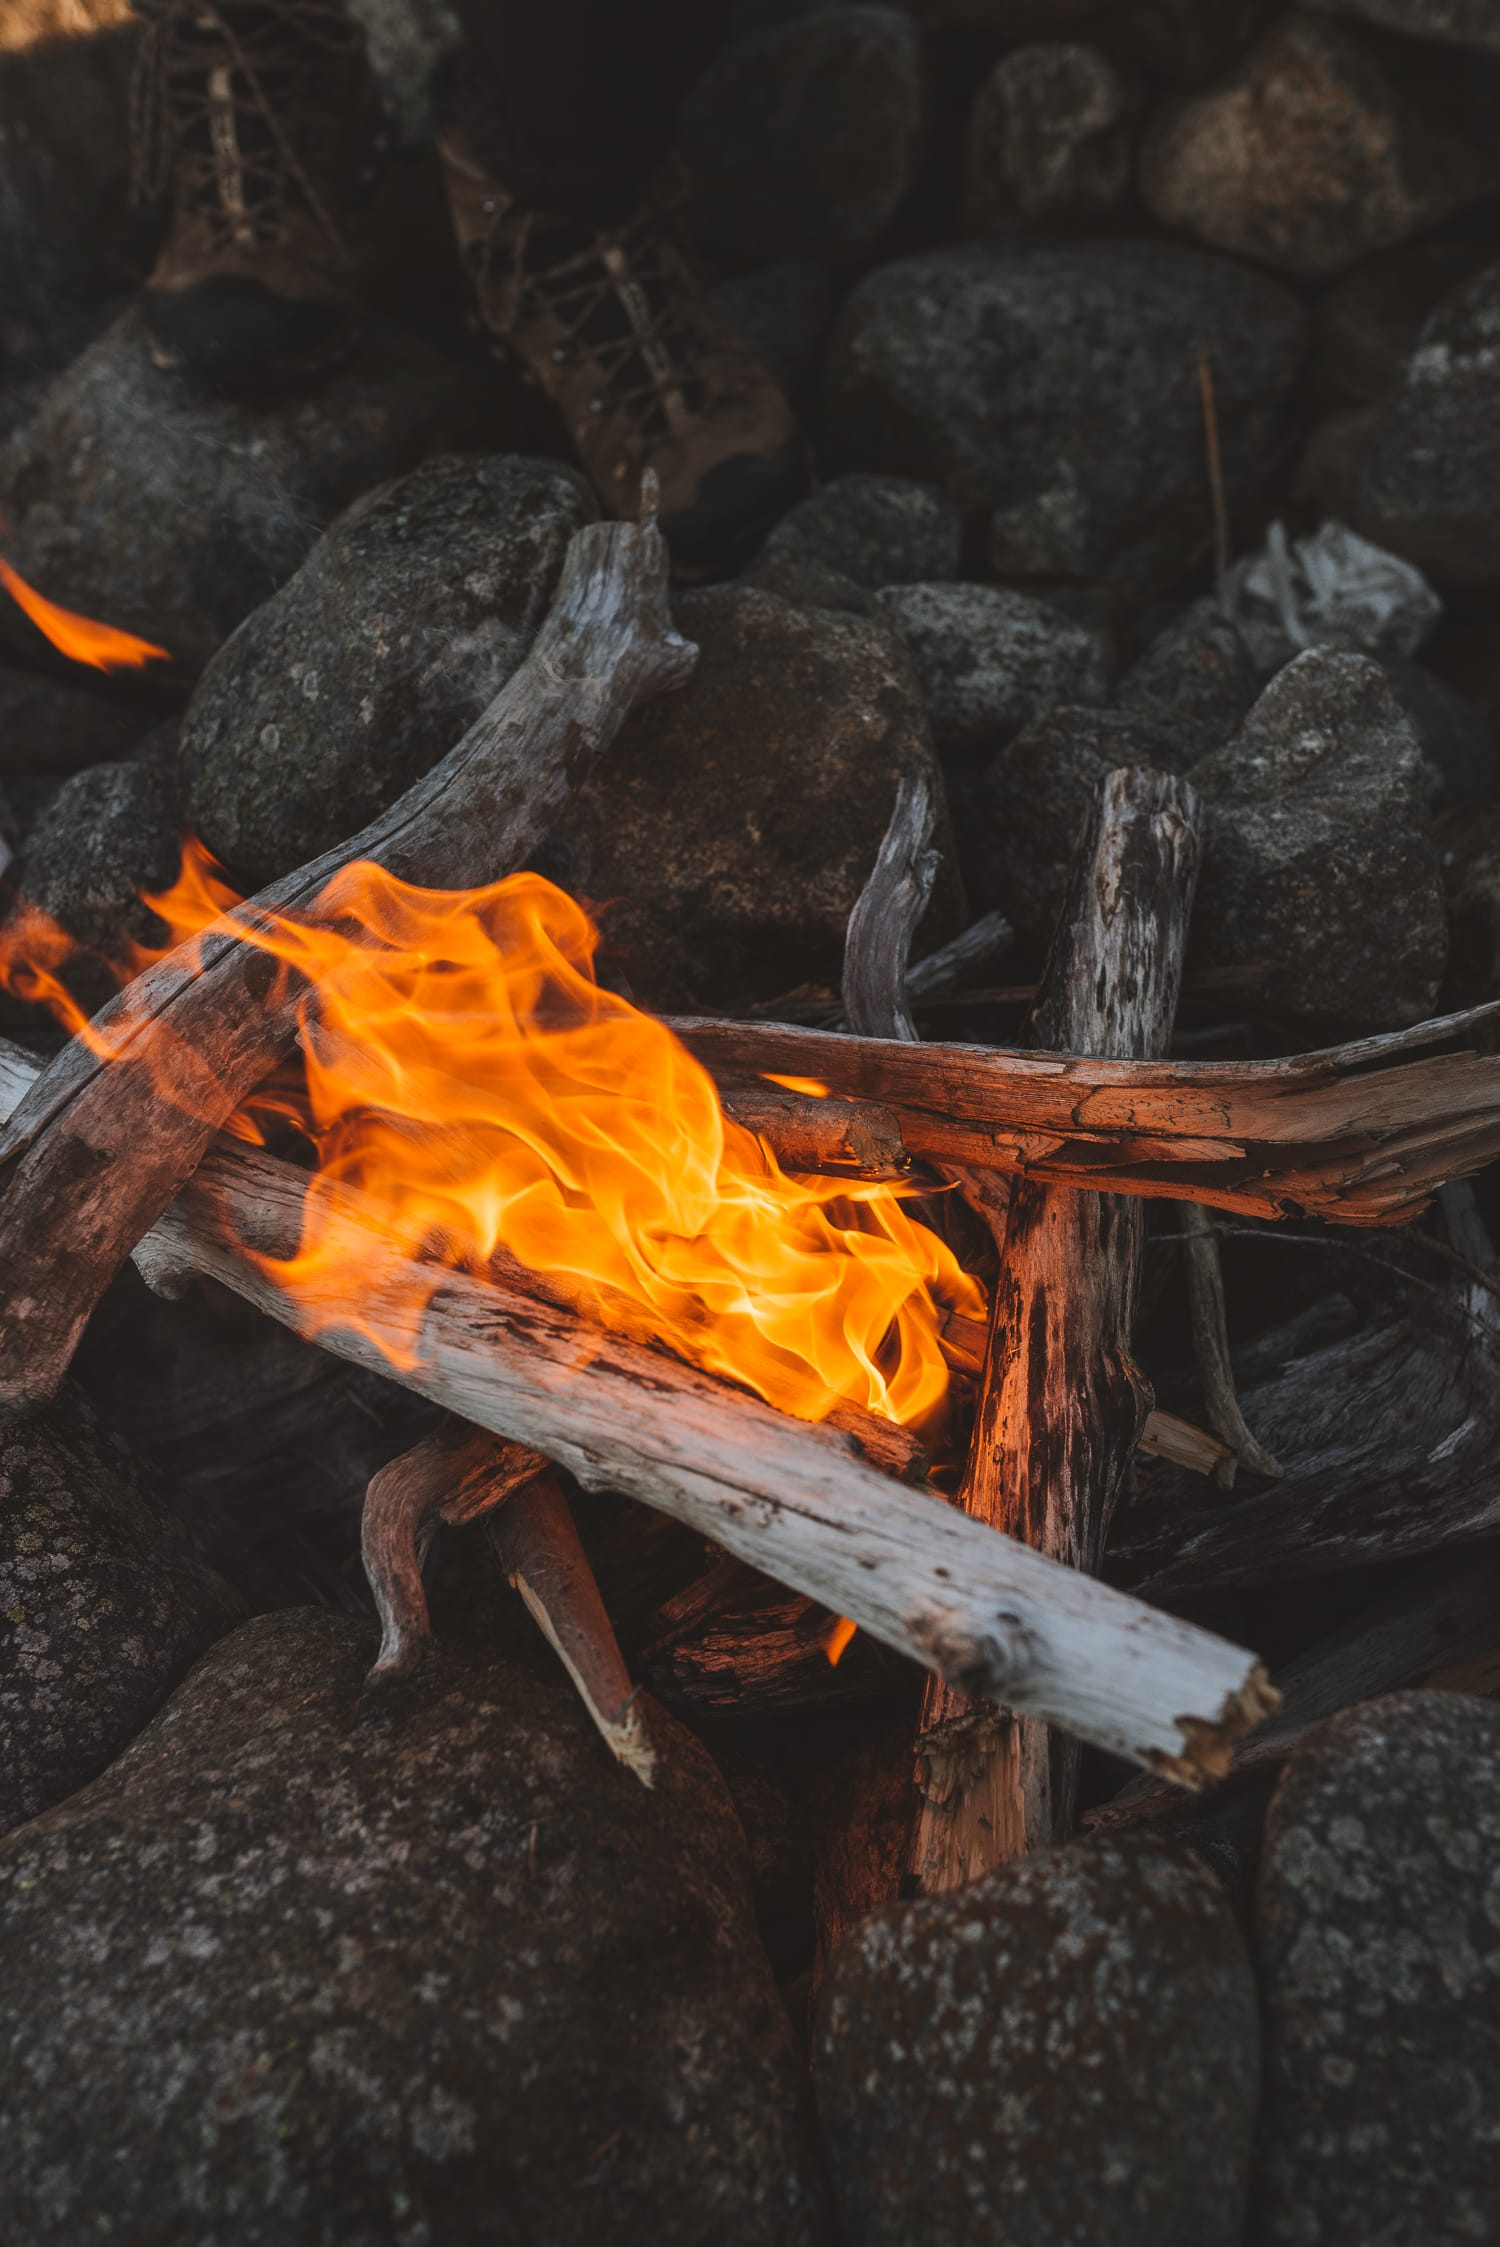 driftwood and fire